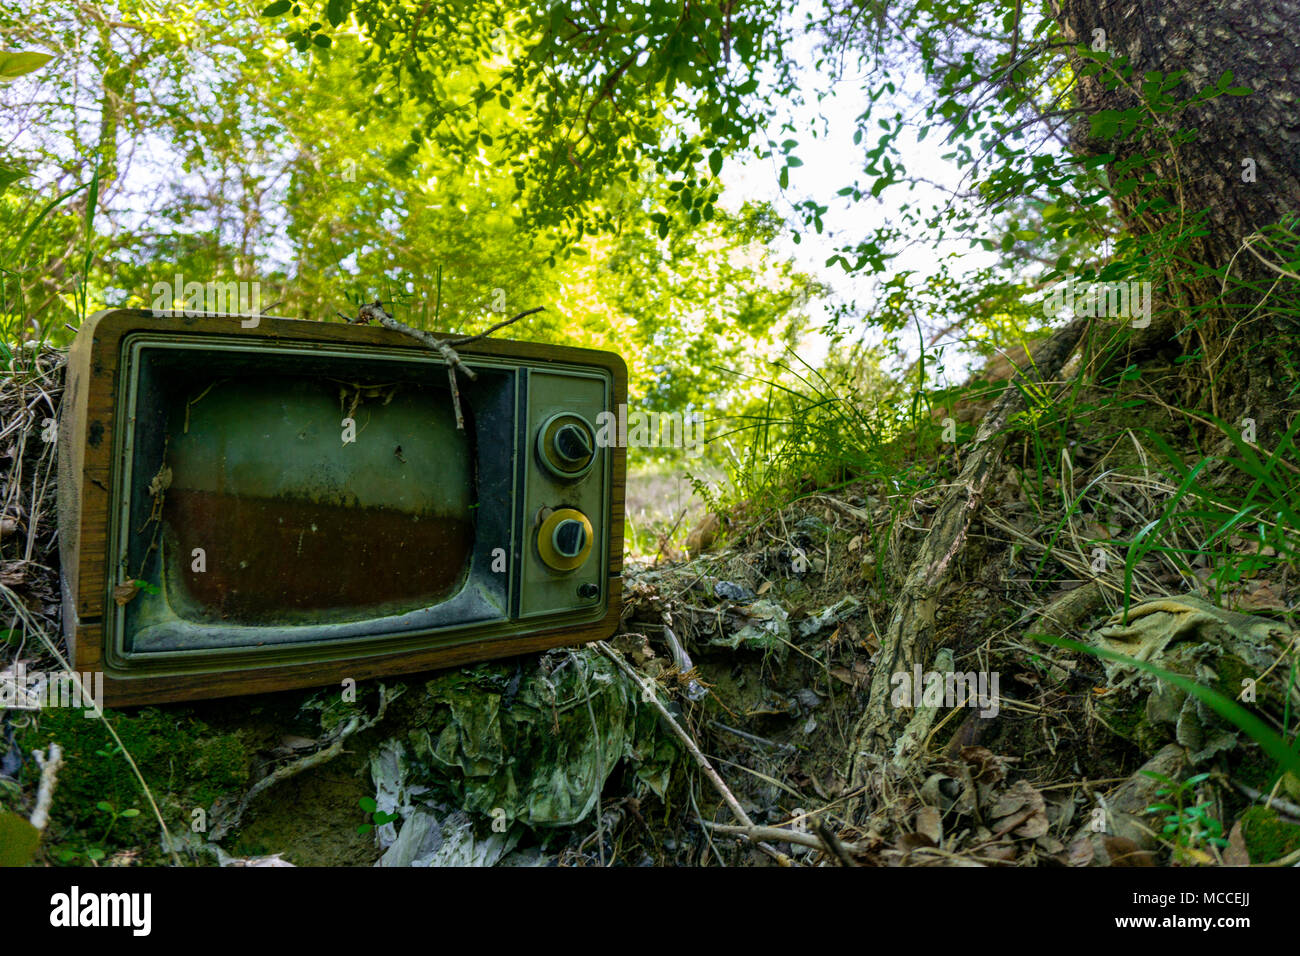 tv became one with nature - Stock Image